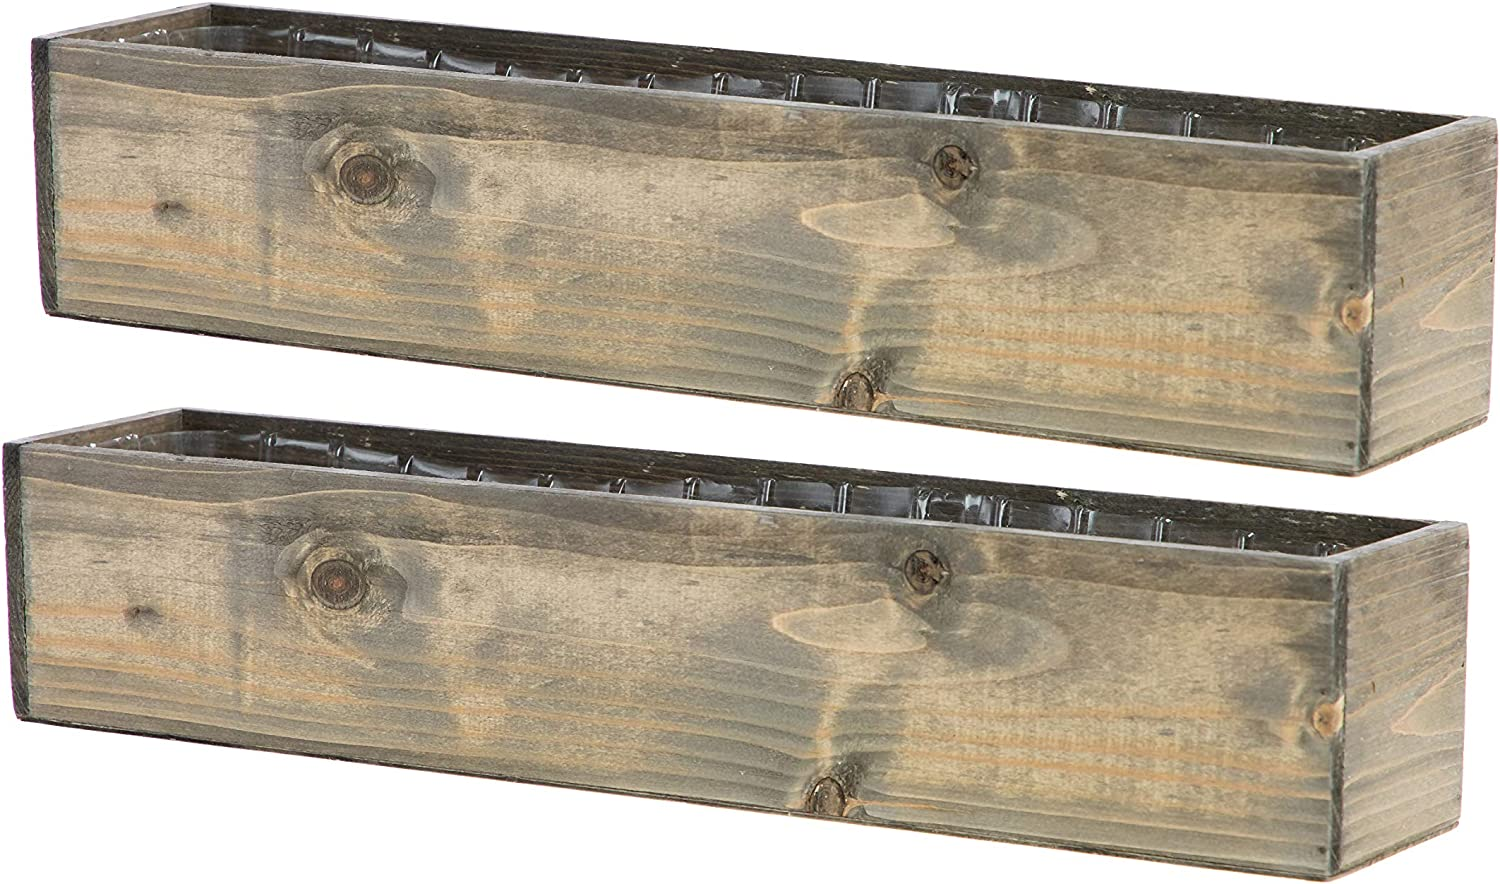 Wooden Planter Box, Rustic Barn Wood with Plastic Liner l Garden Decor l Restaurant and Wedding Decorations l Wedding Bouquets, Table Centerpiece (20x4 Set of 2, Natural)